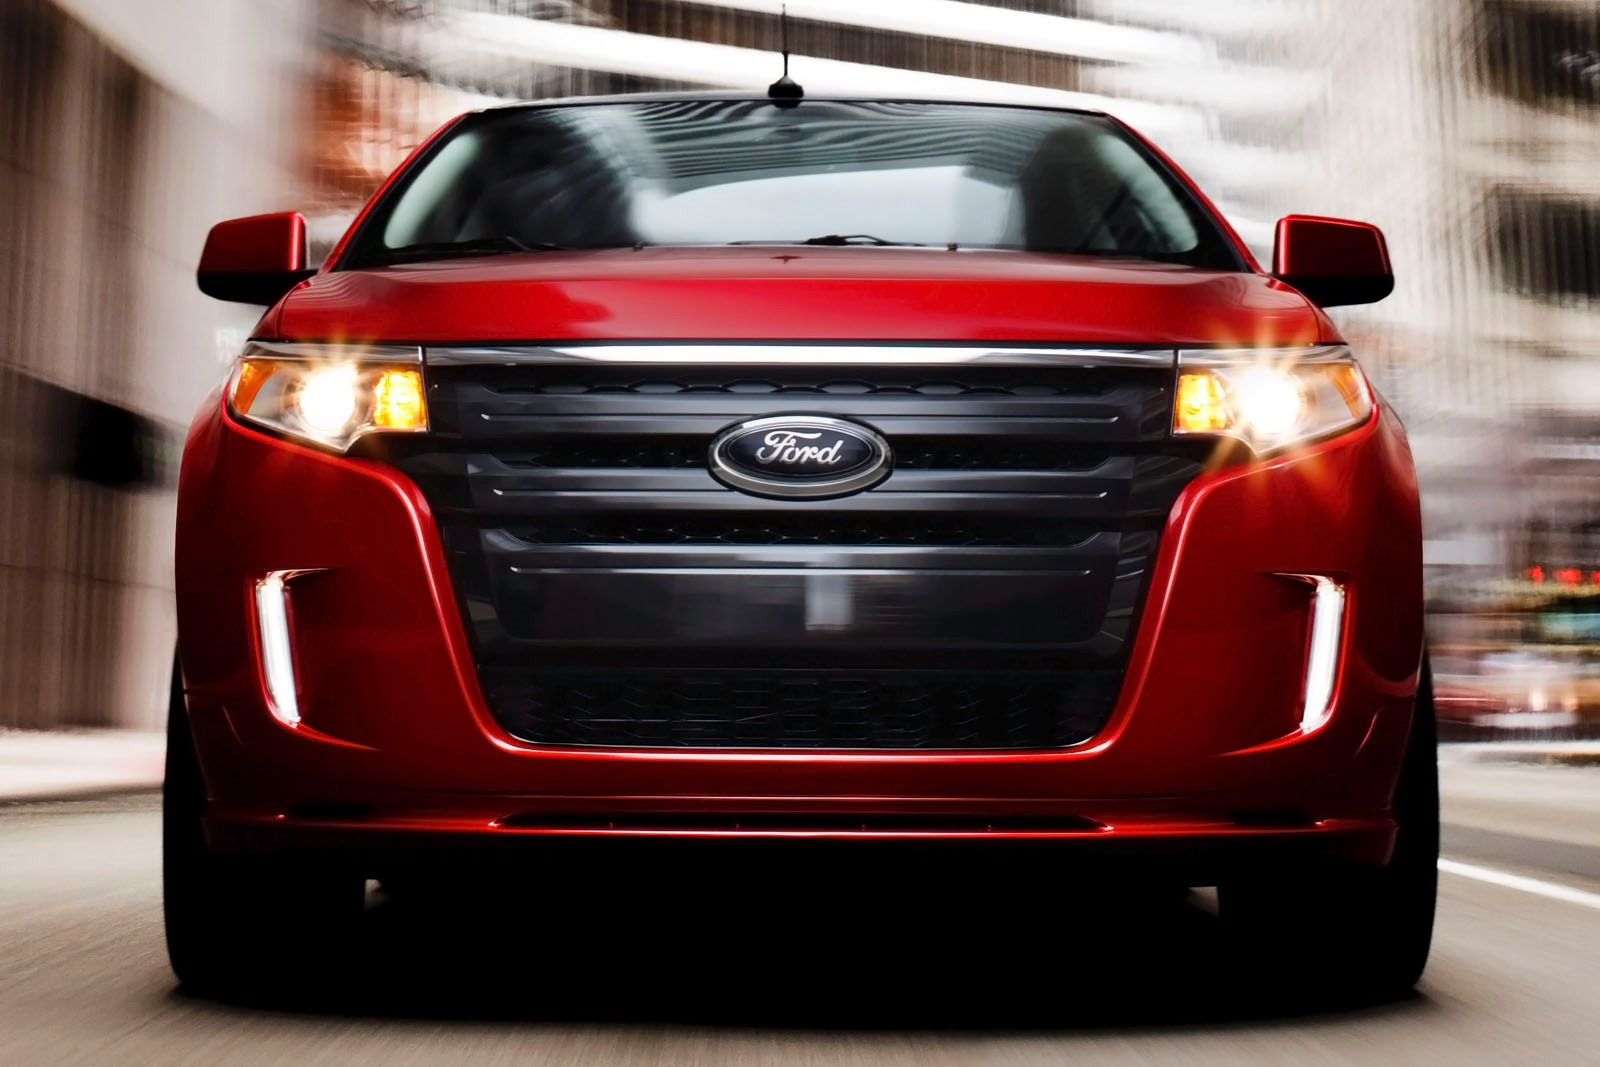 2013 Ford Edge 4dr SUV Re exterior #7